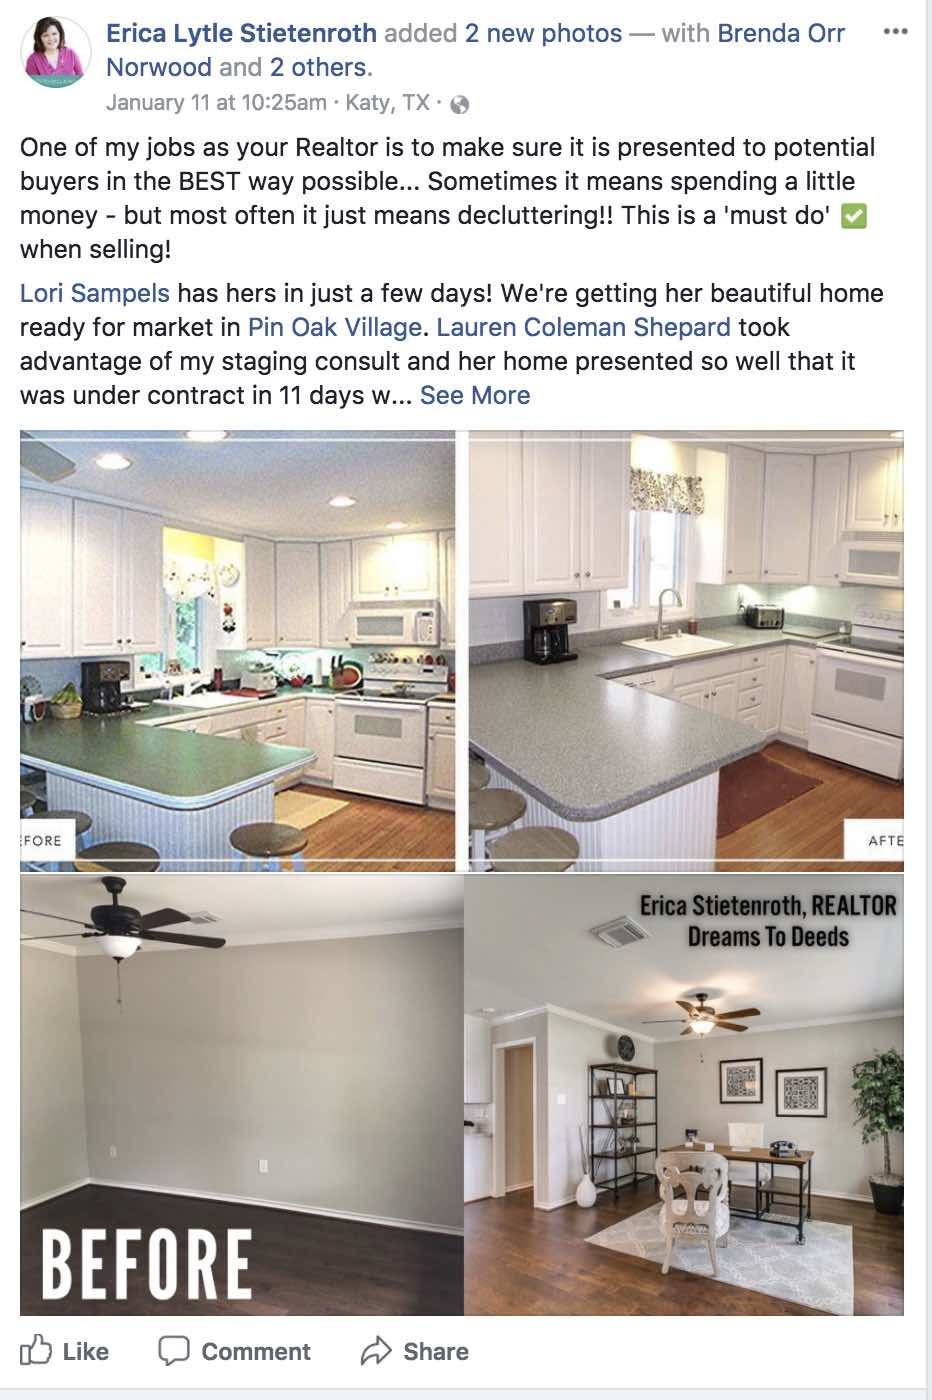 Before and after pics are showing from a real estate agent post on Facebook using the example to show how she prepares a home to sell